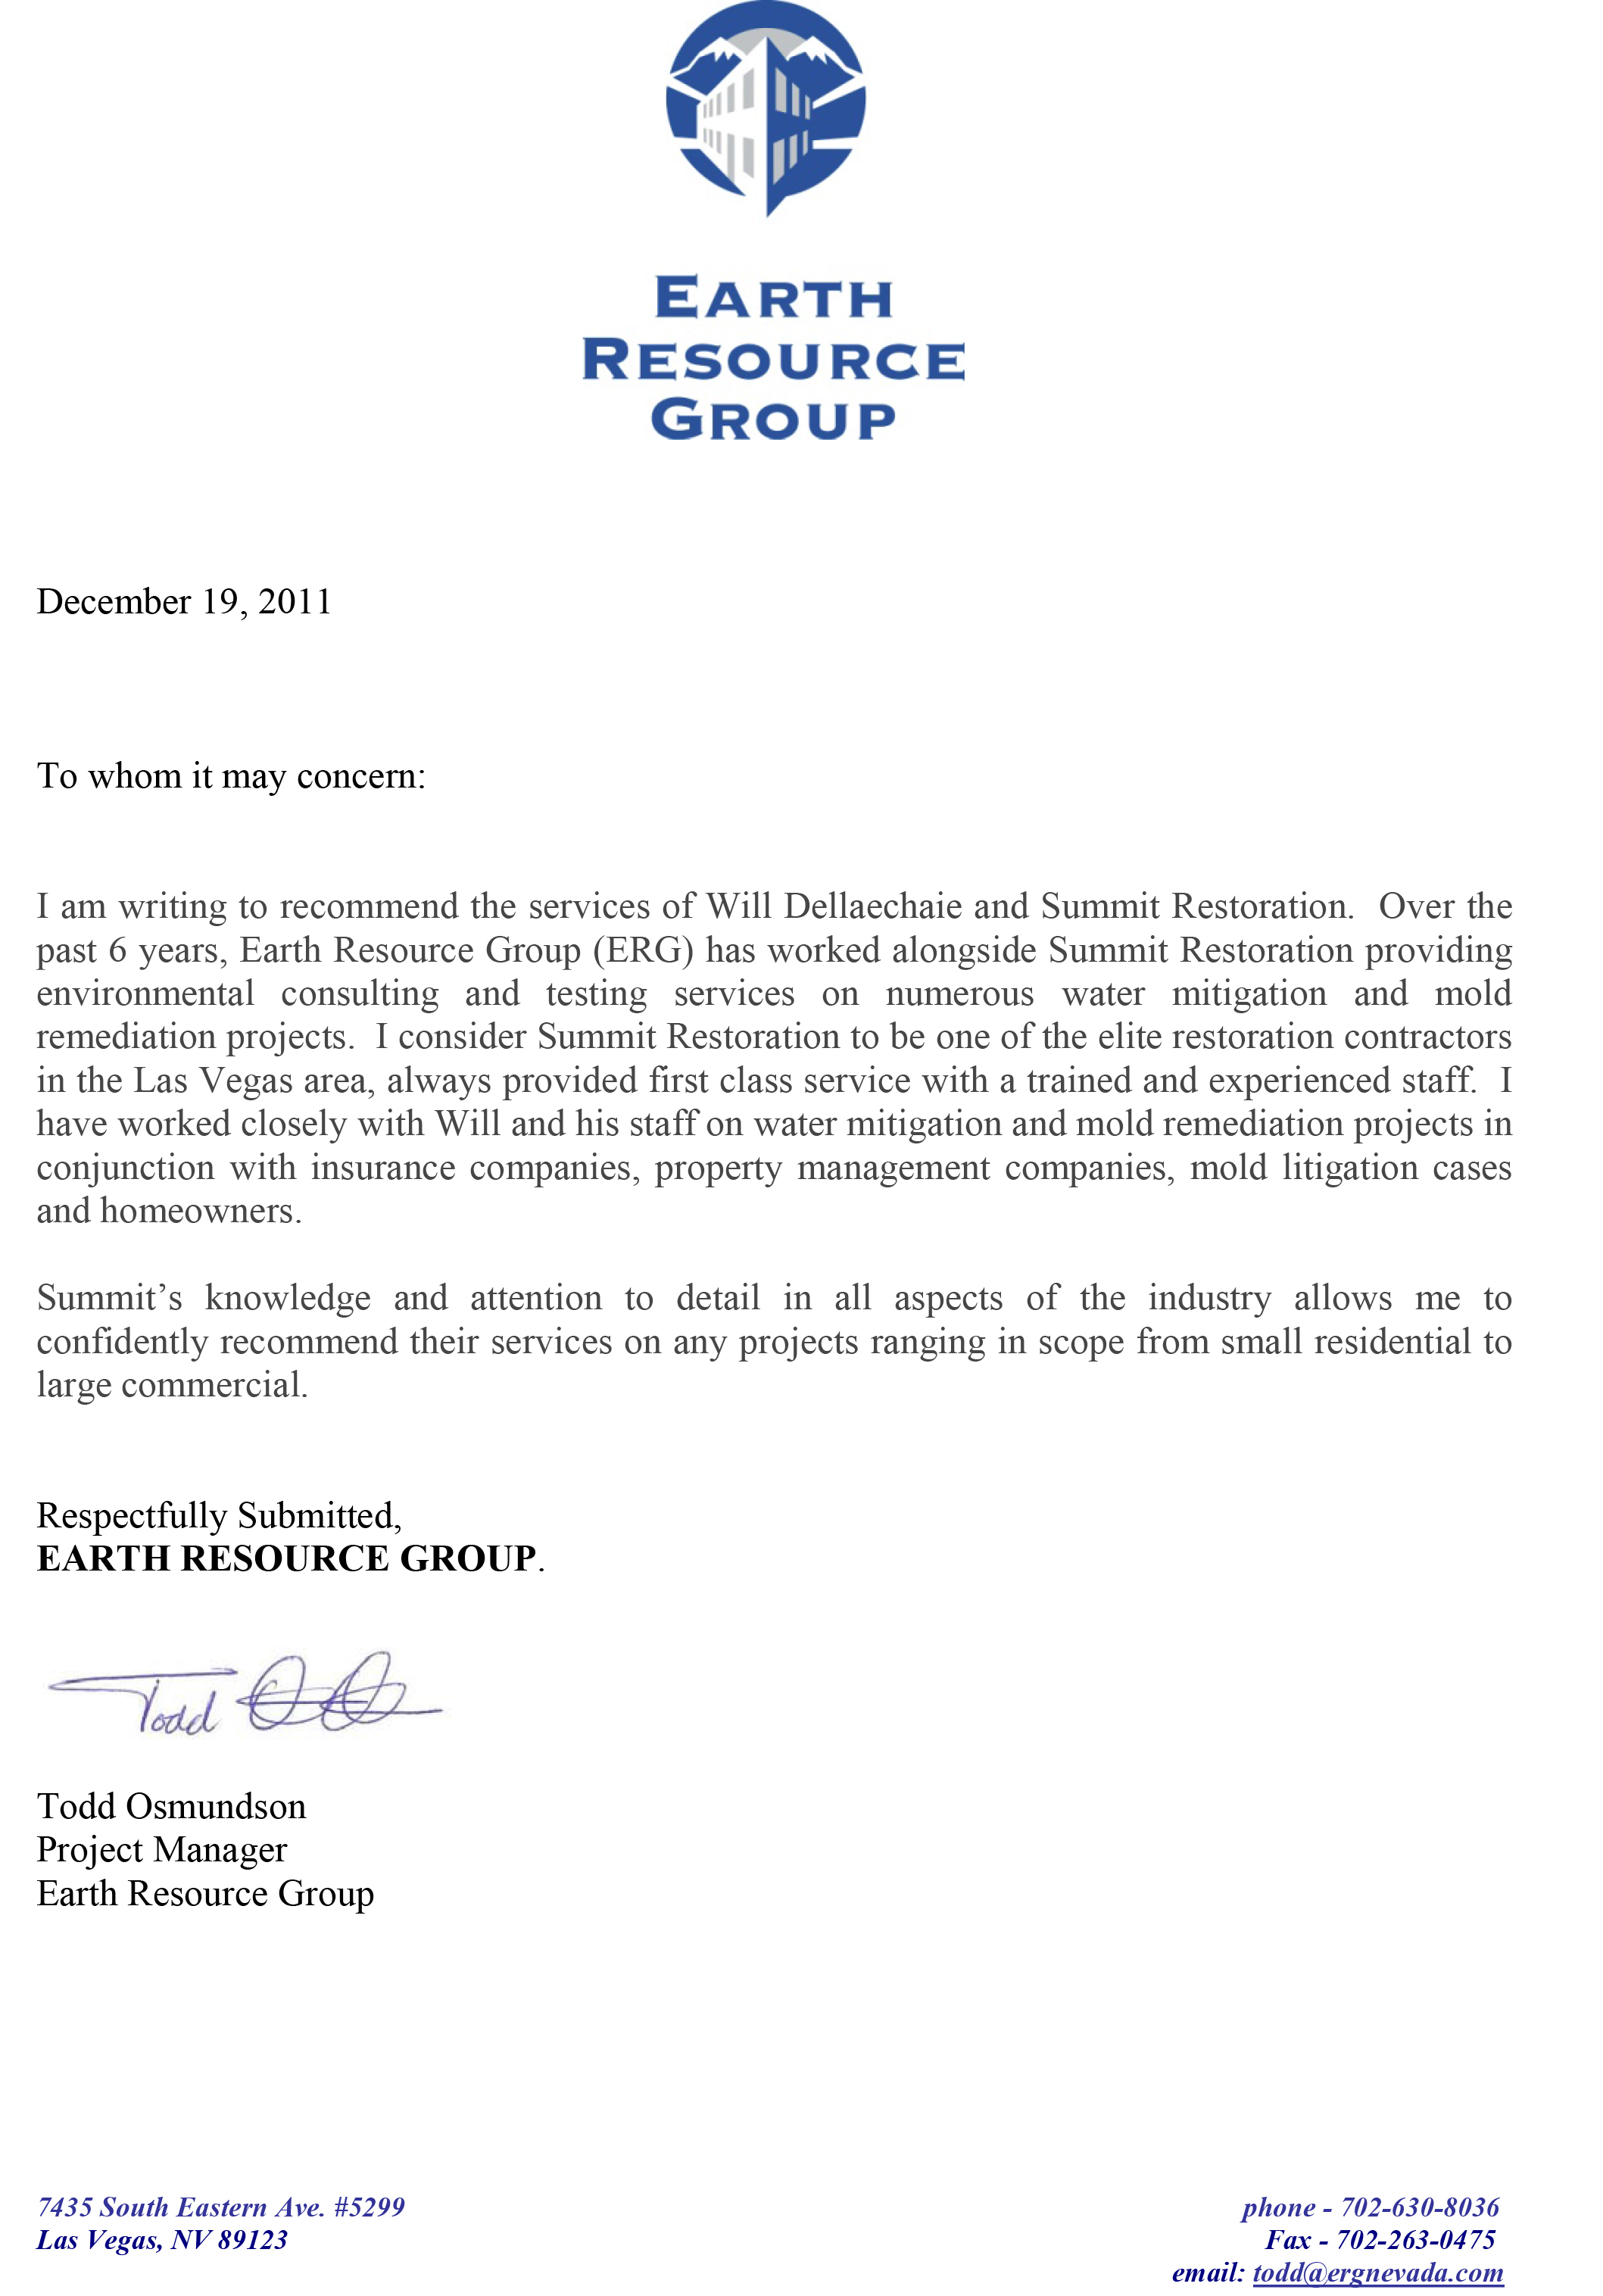 Testimonial from Earth Resource Group